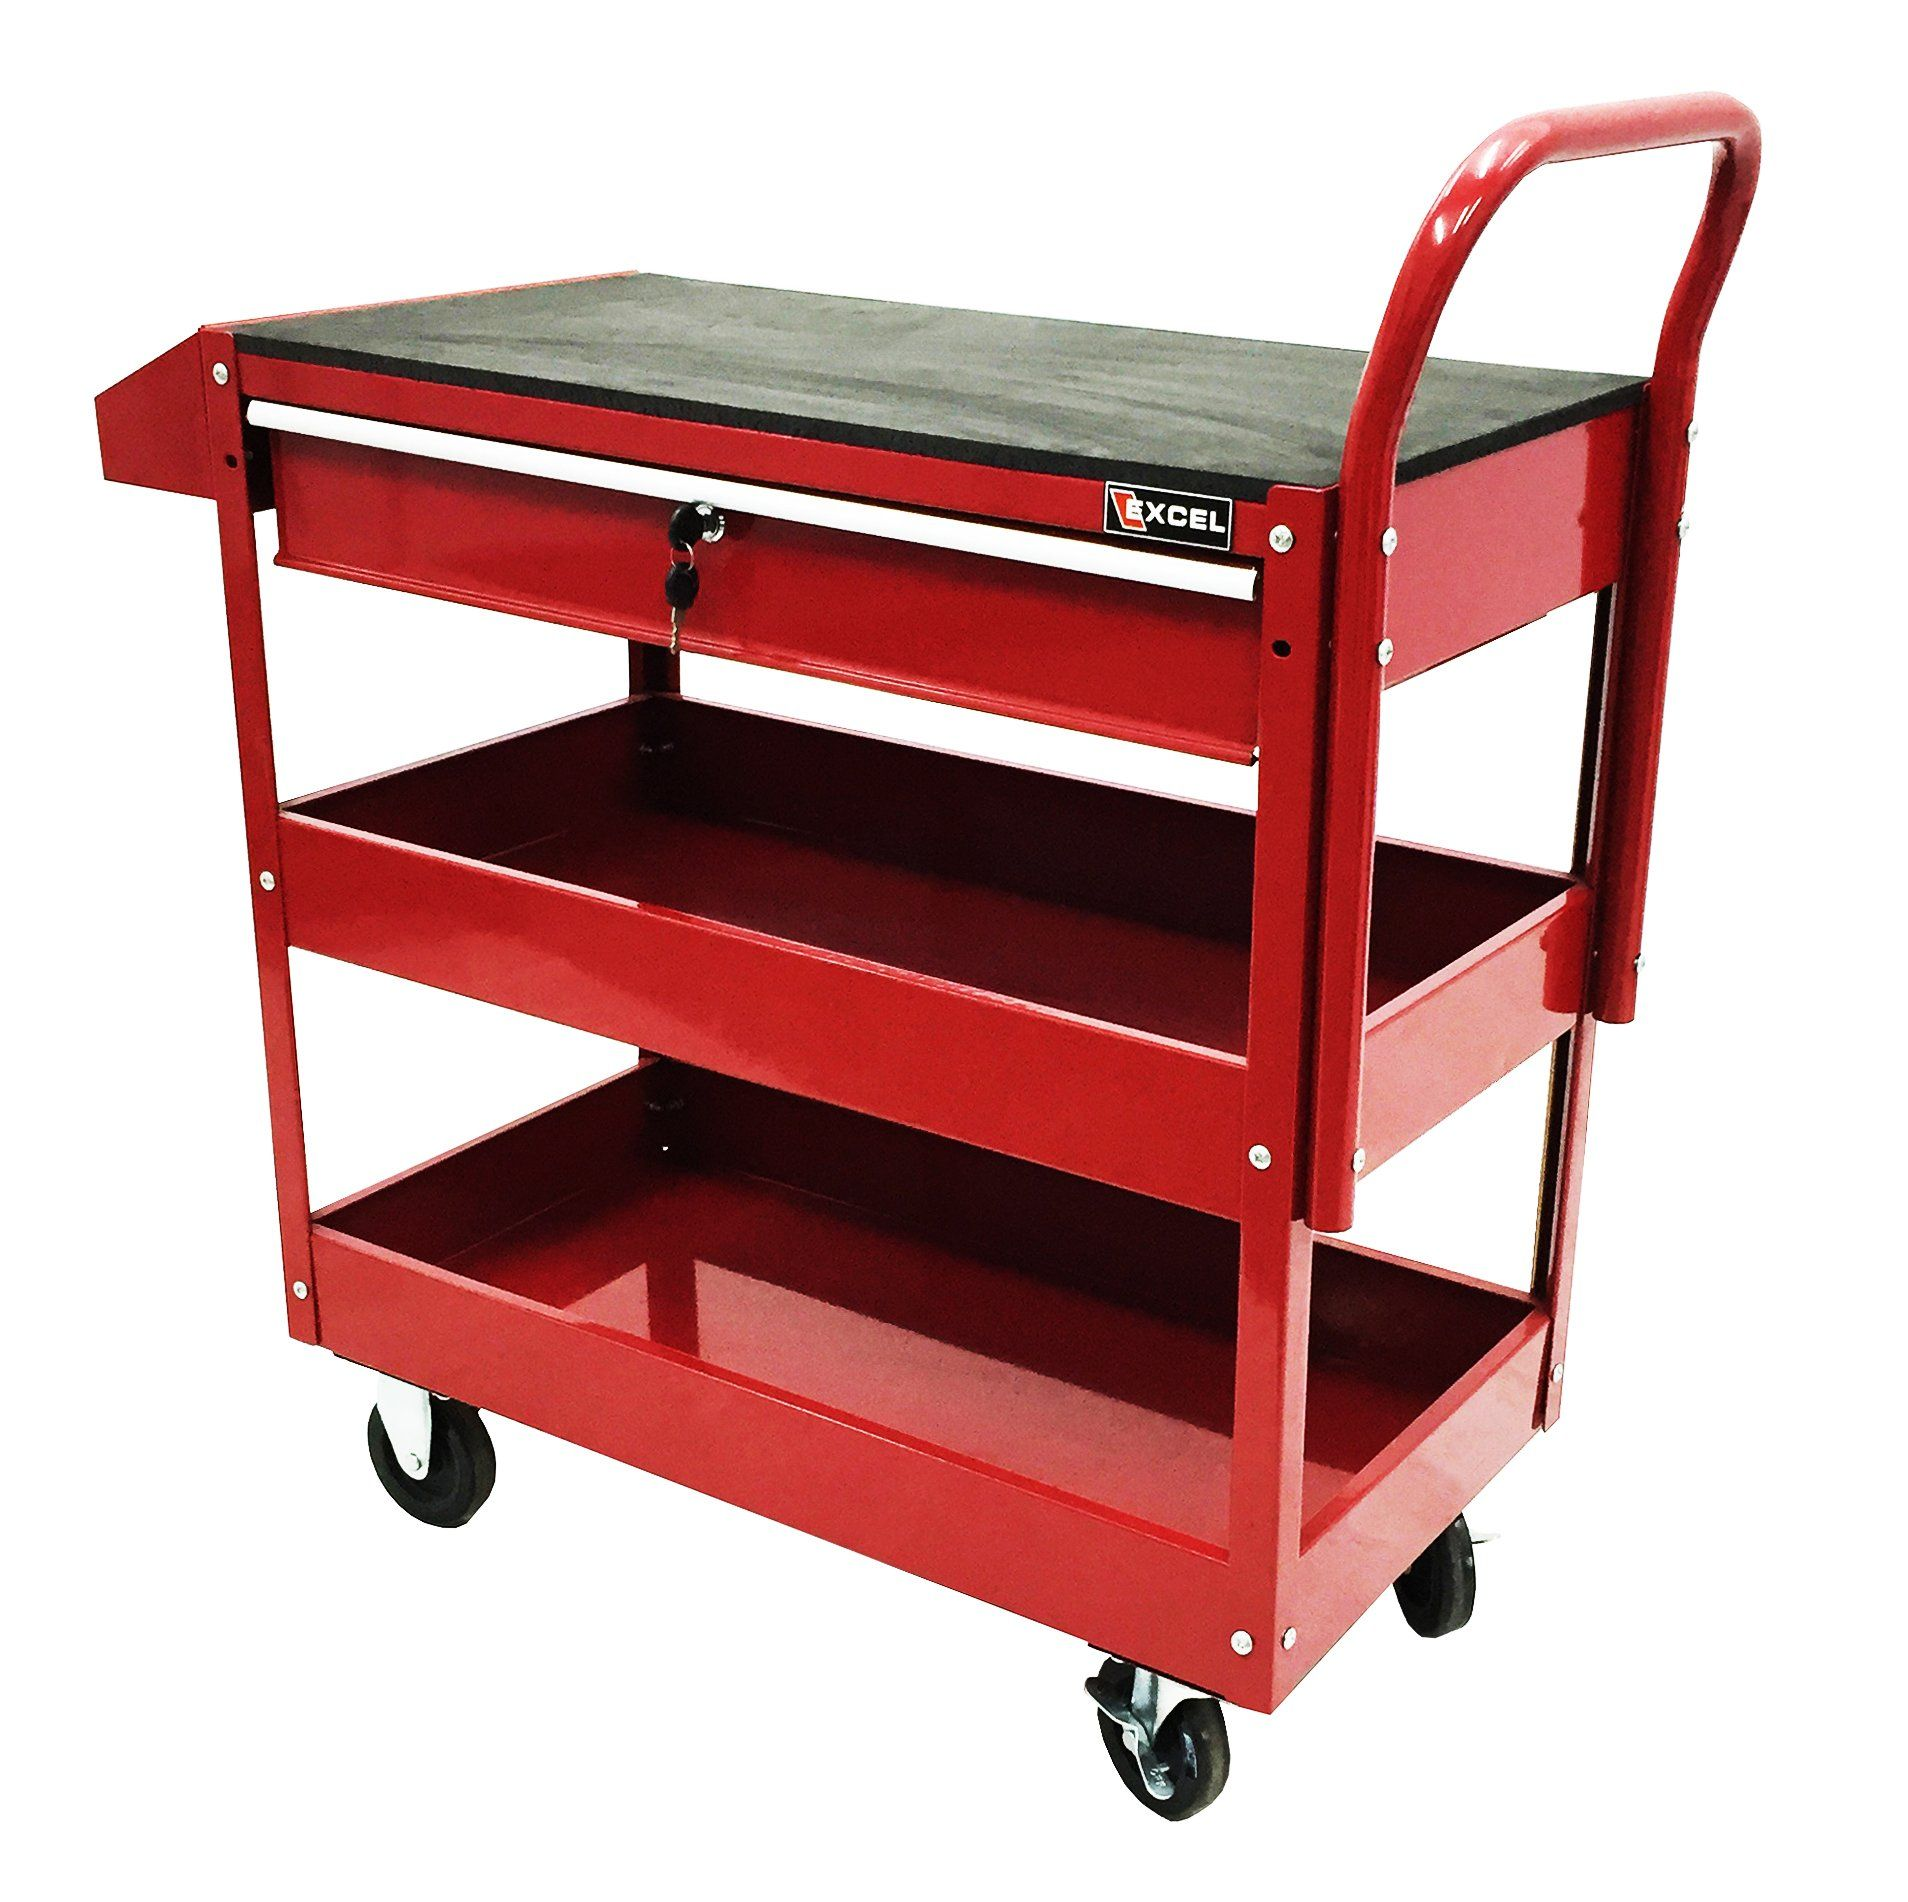 Excel tc301cred 36inch steel tool cart red service